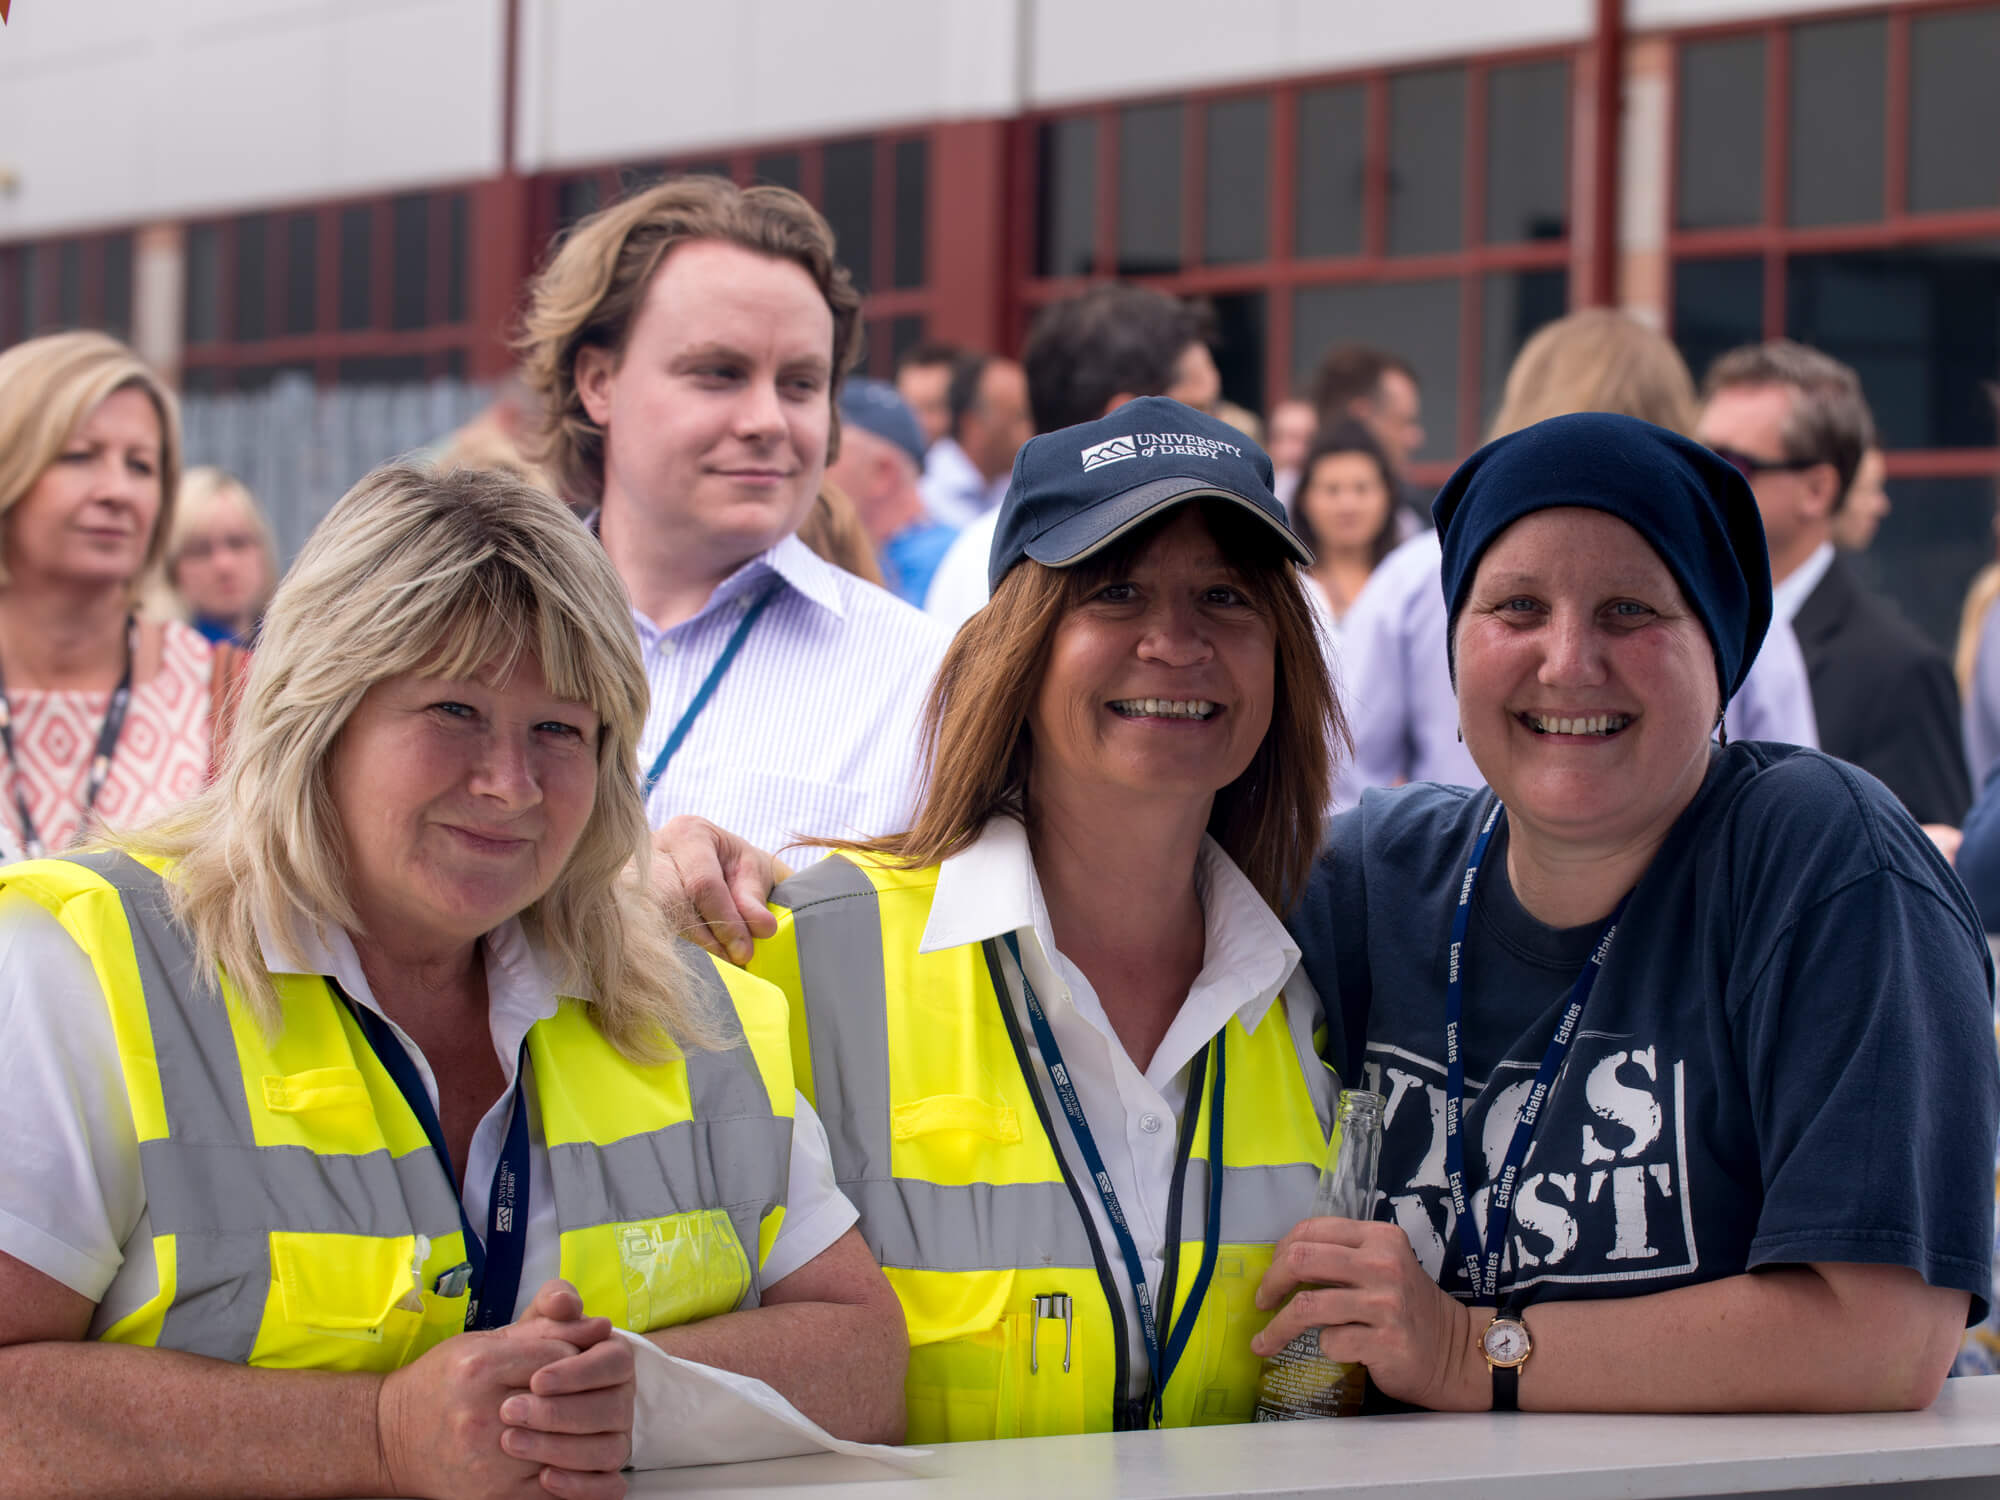 smiling members of staff at a University event